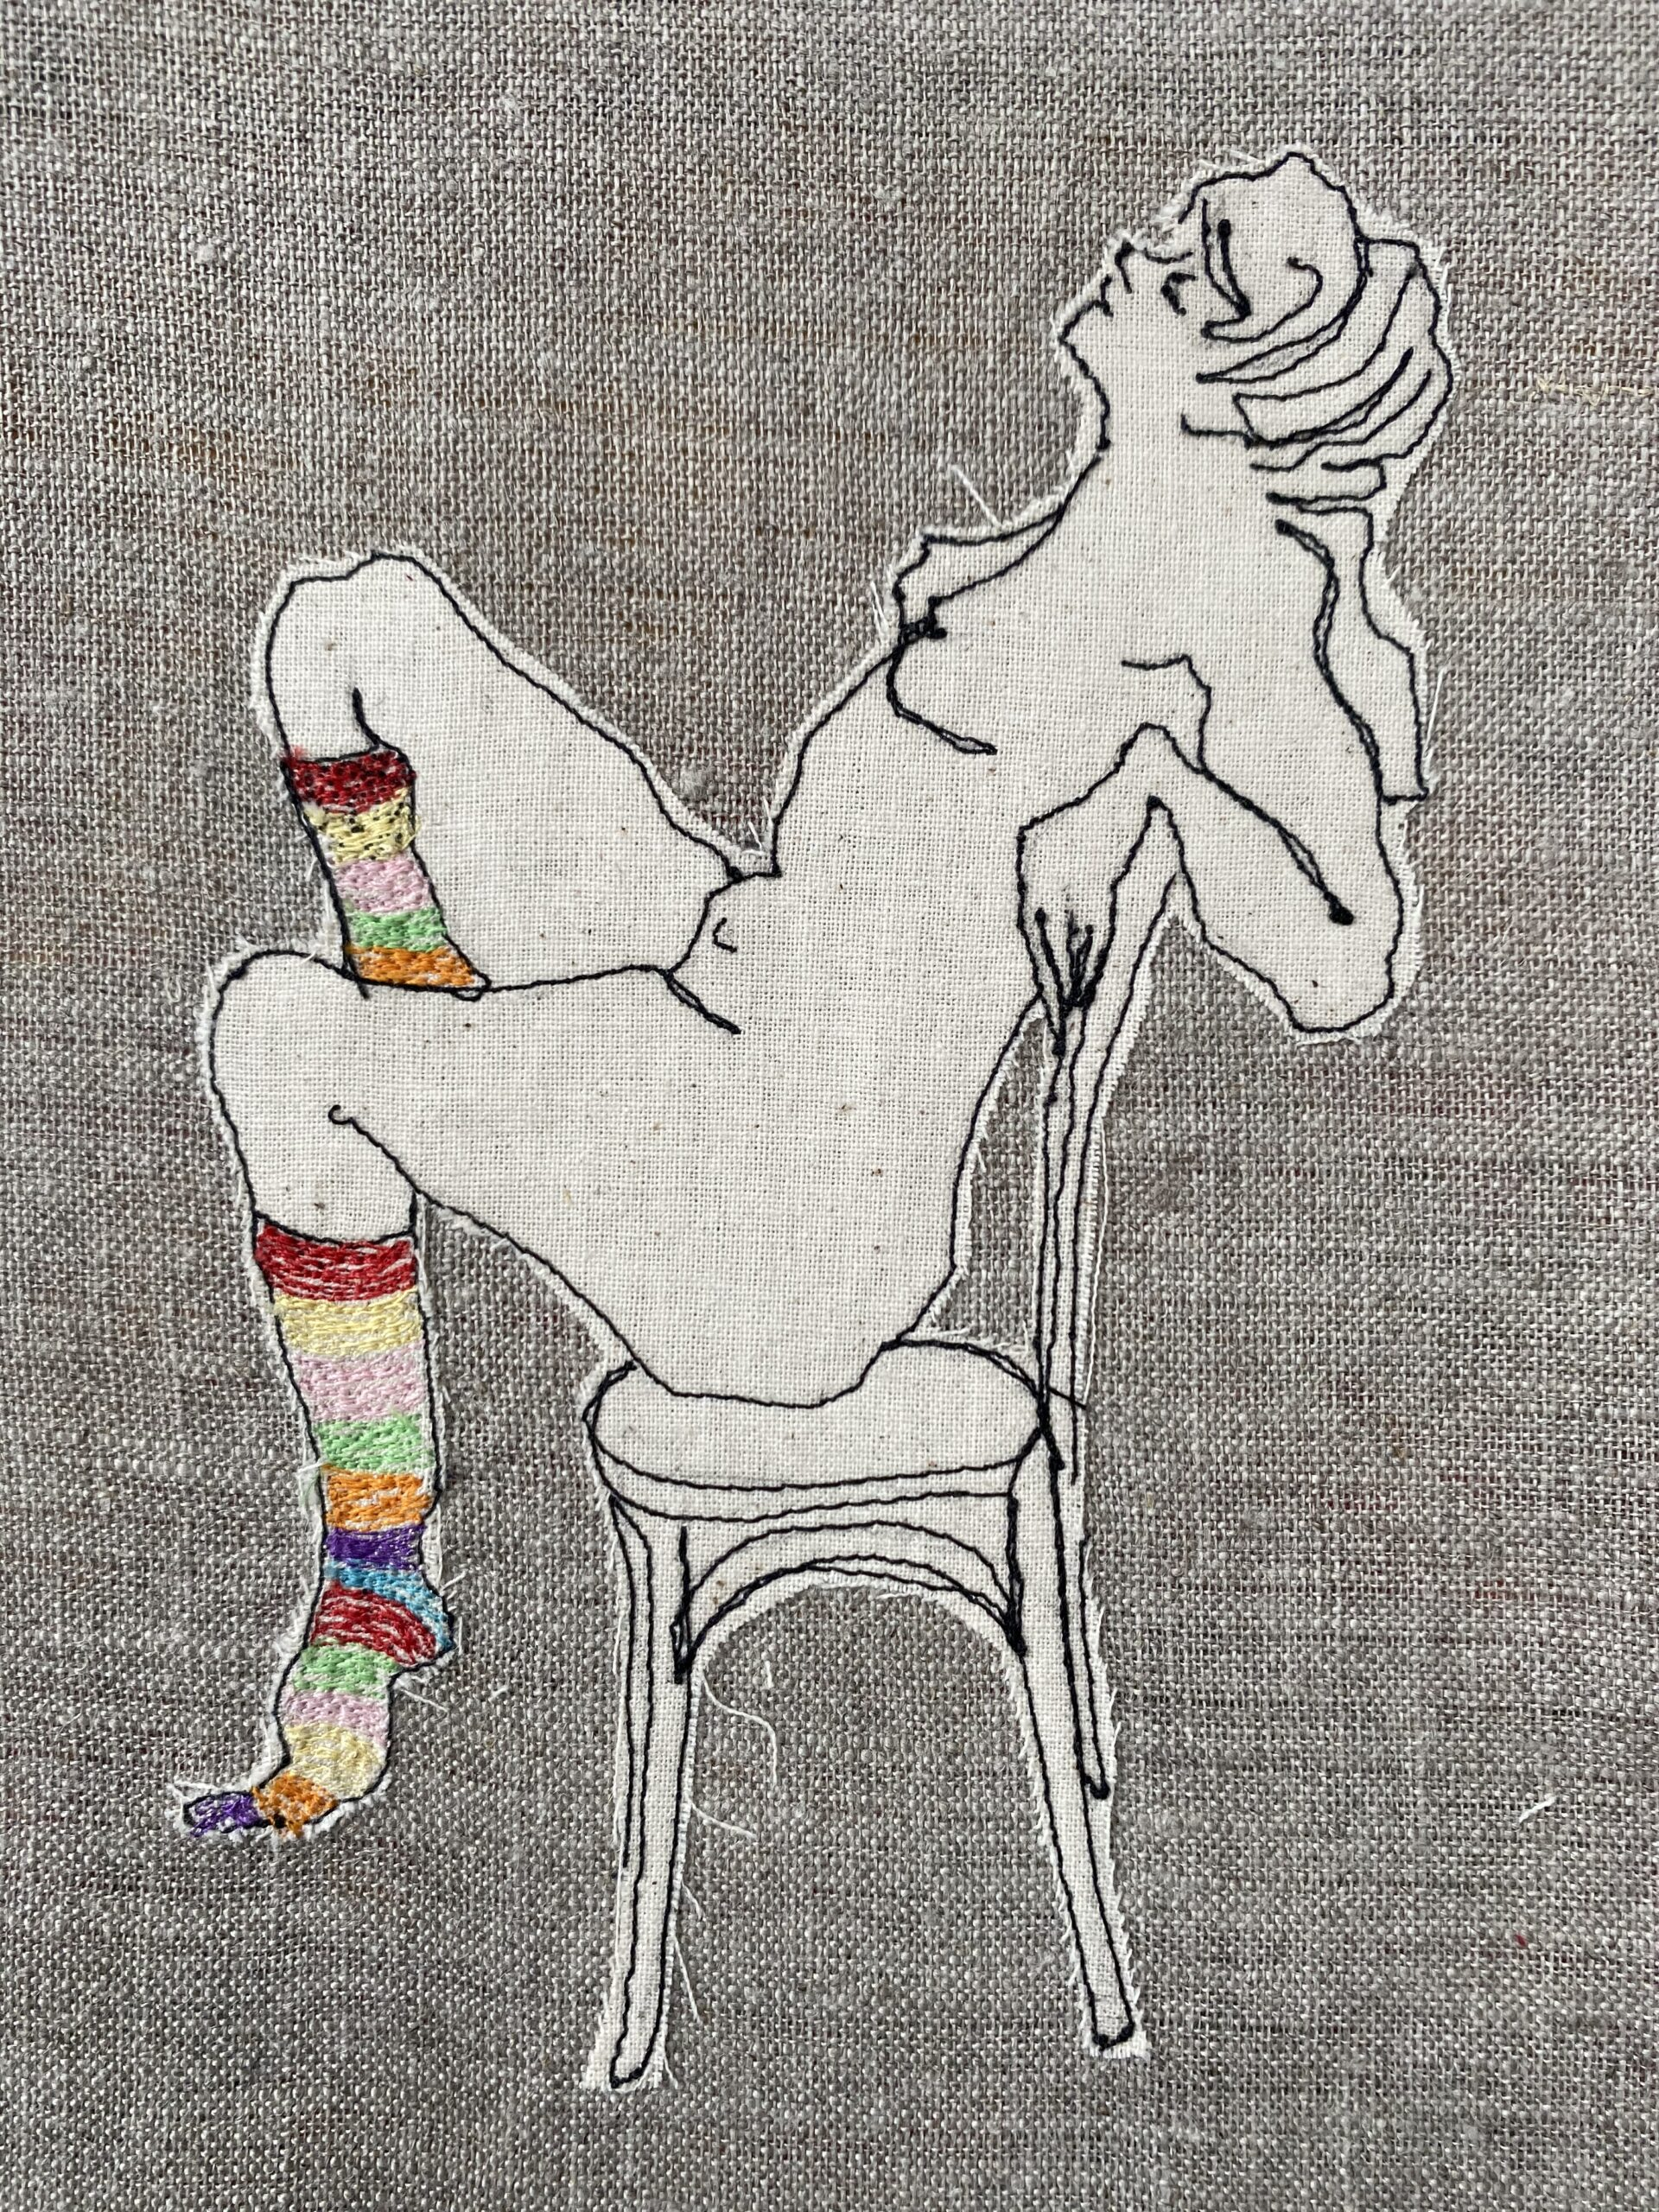 Ms Stripey Socks II Embroidered Textile Artwork By  Juliet D Collins (Prahran)